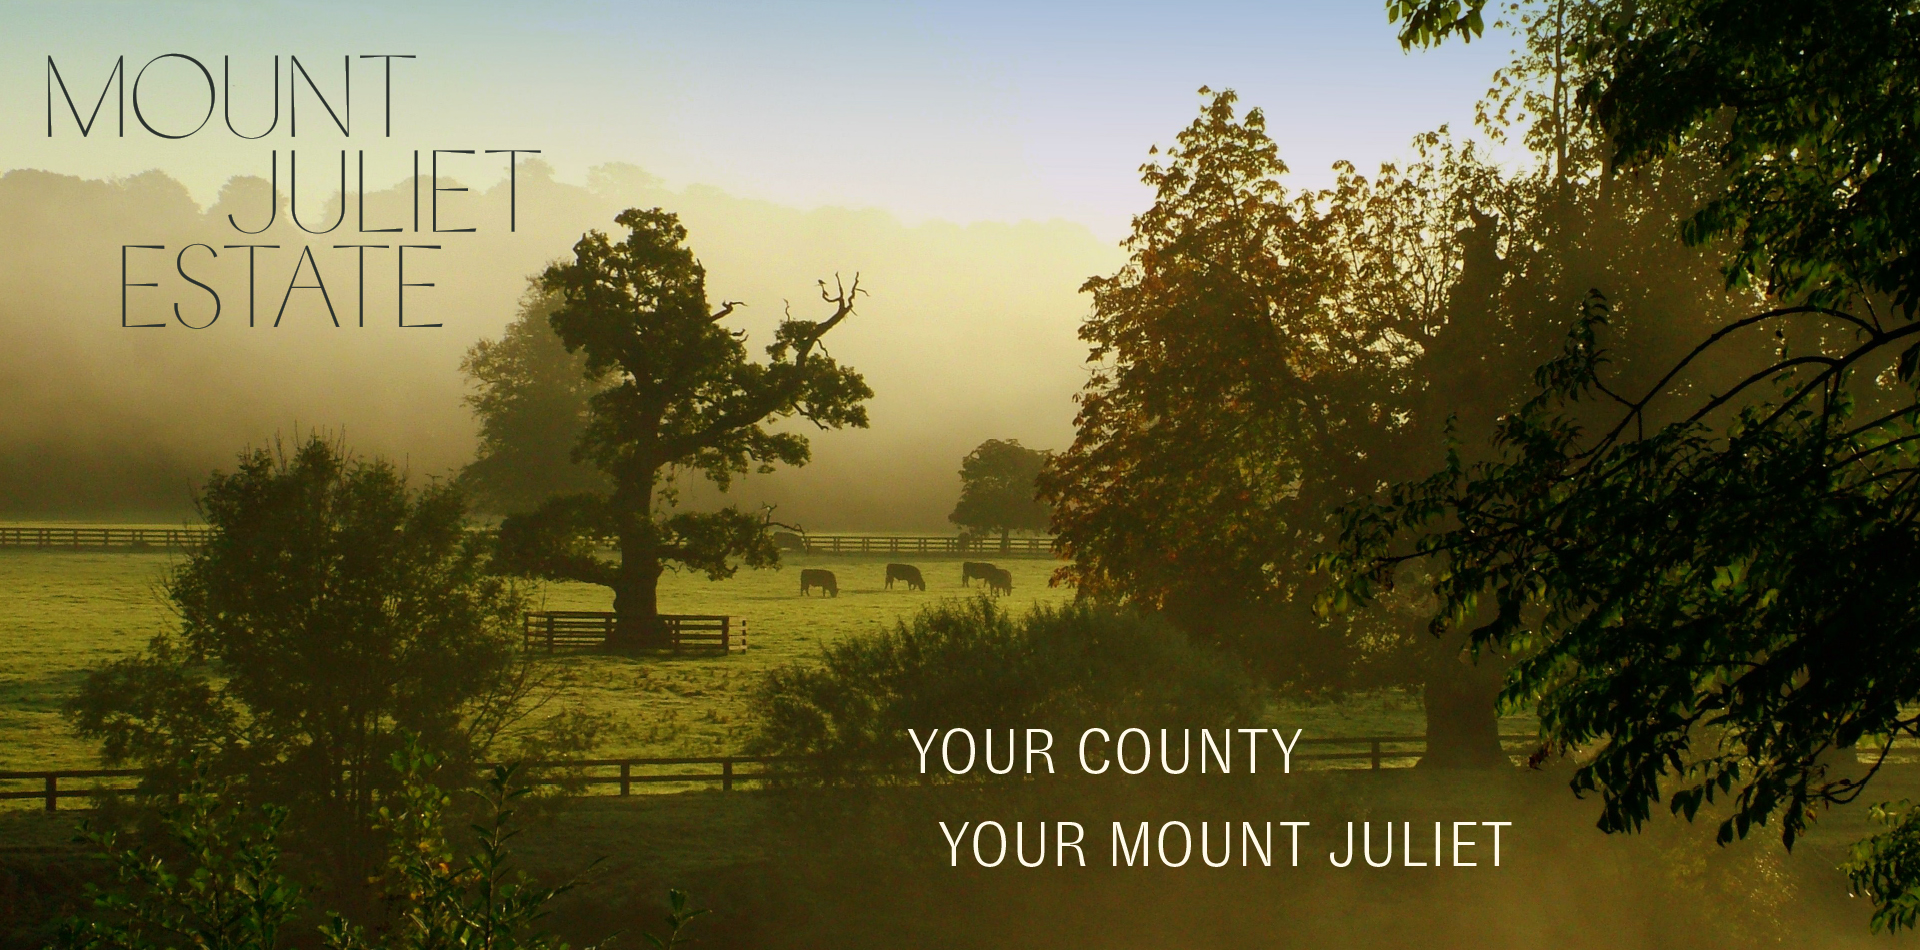 Overnight Escape at Mount Juliet Estate From €99pps